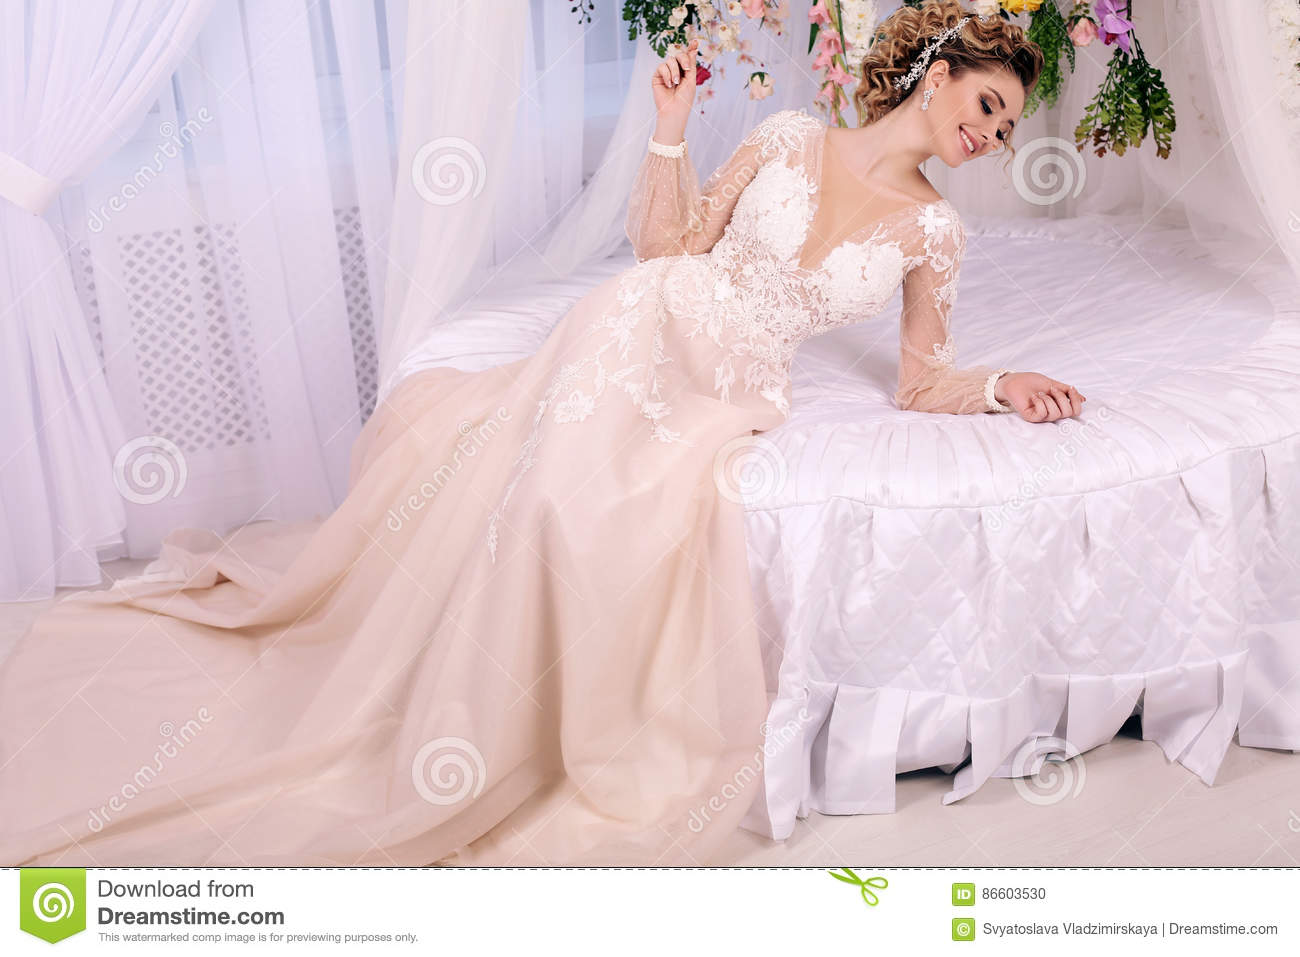 Gorgeous woman with blond hair in luxurious wedding dress